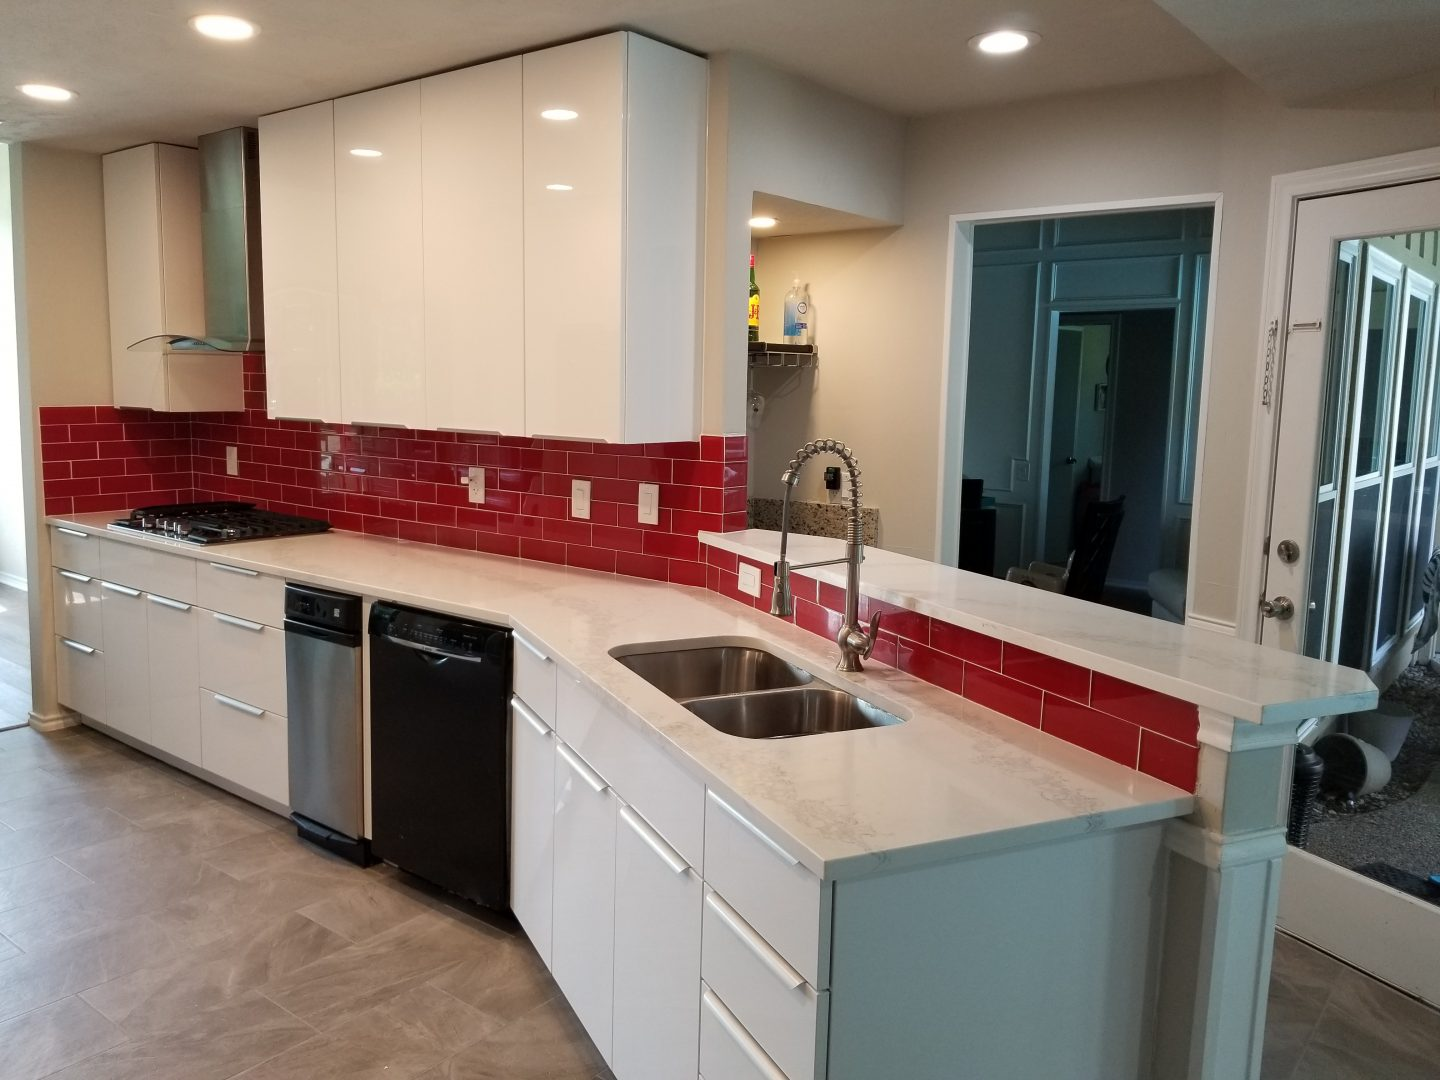 5 Factors to Consider When Choosing a Kitchen Remodeling Service